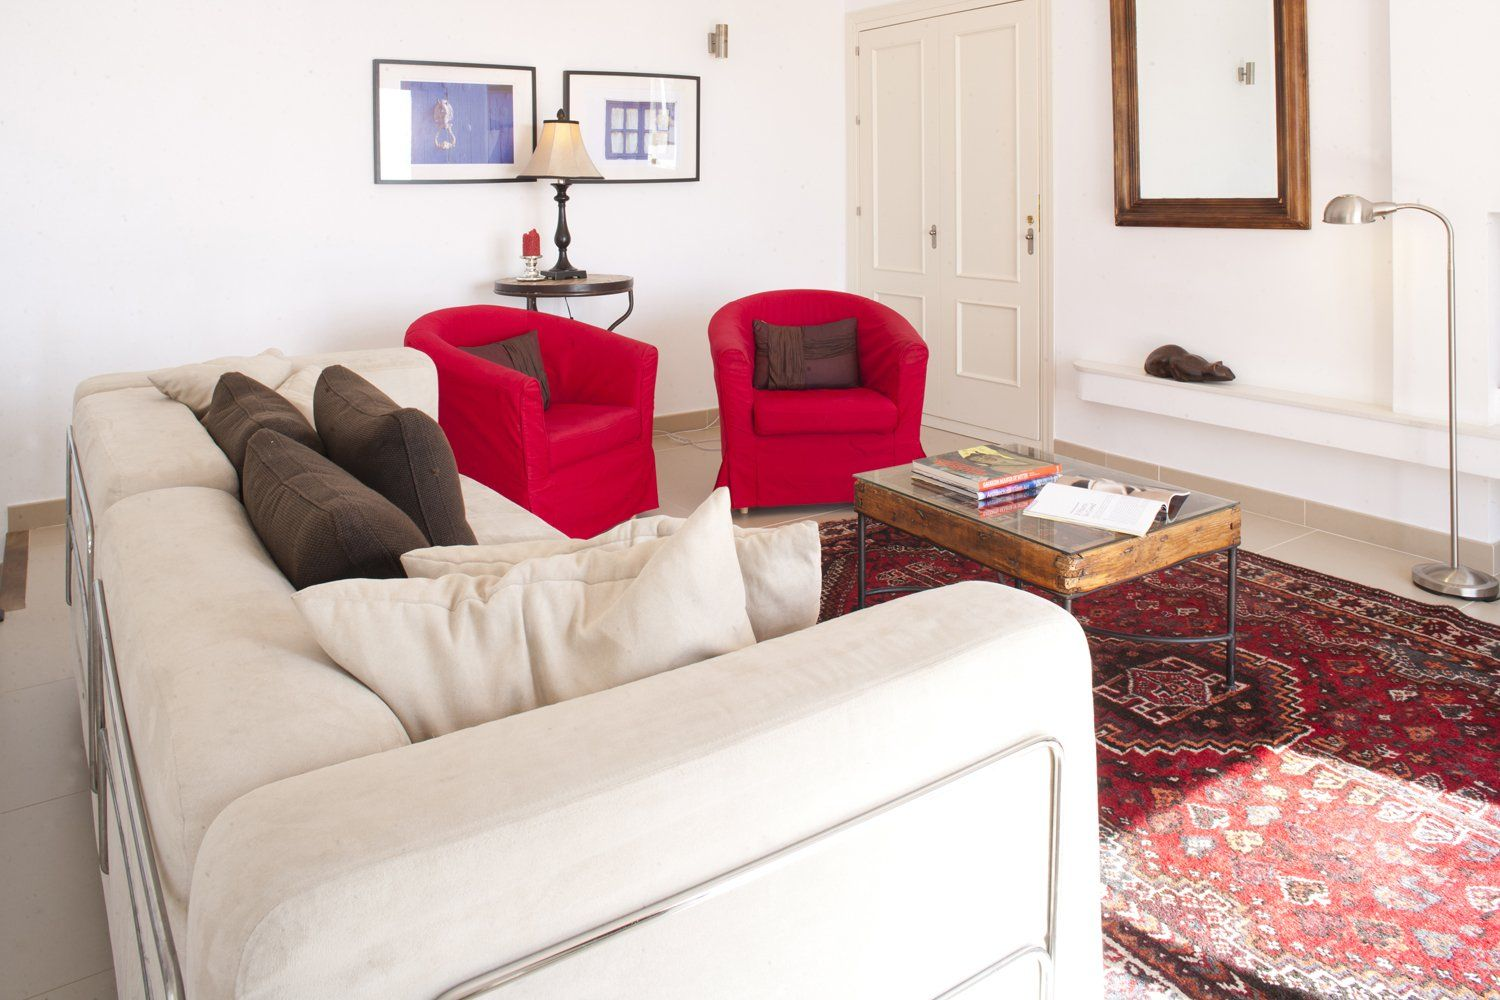 sitting room with sofas